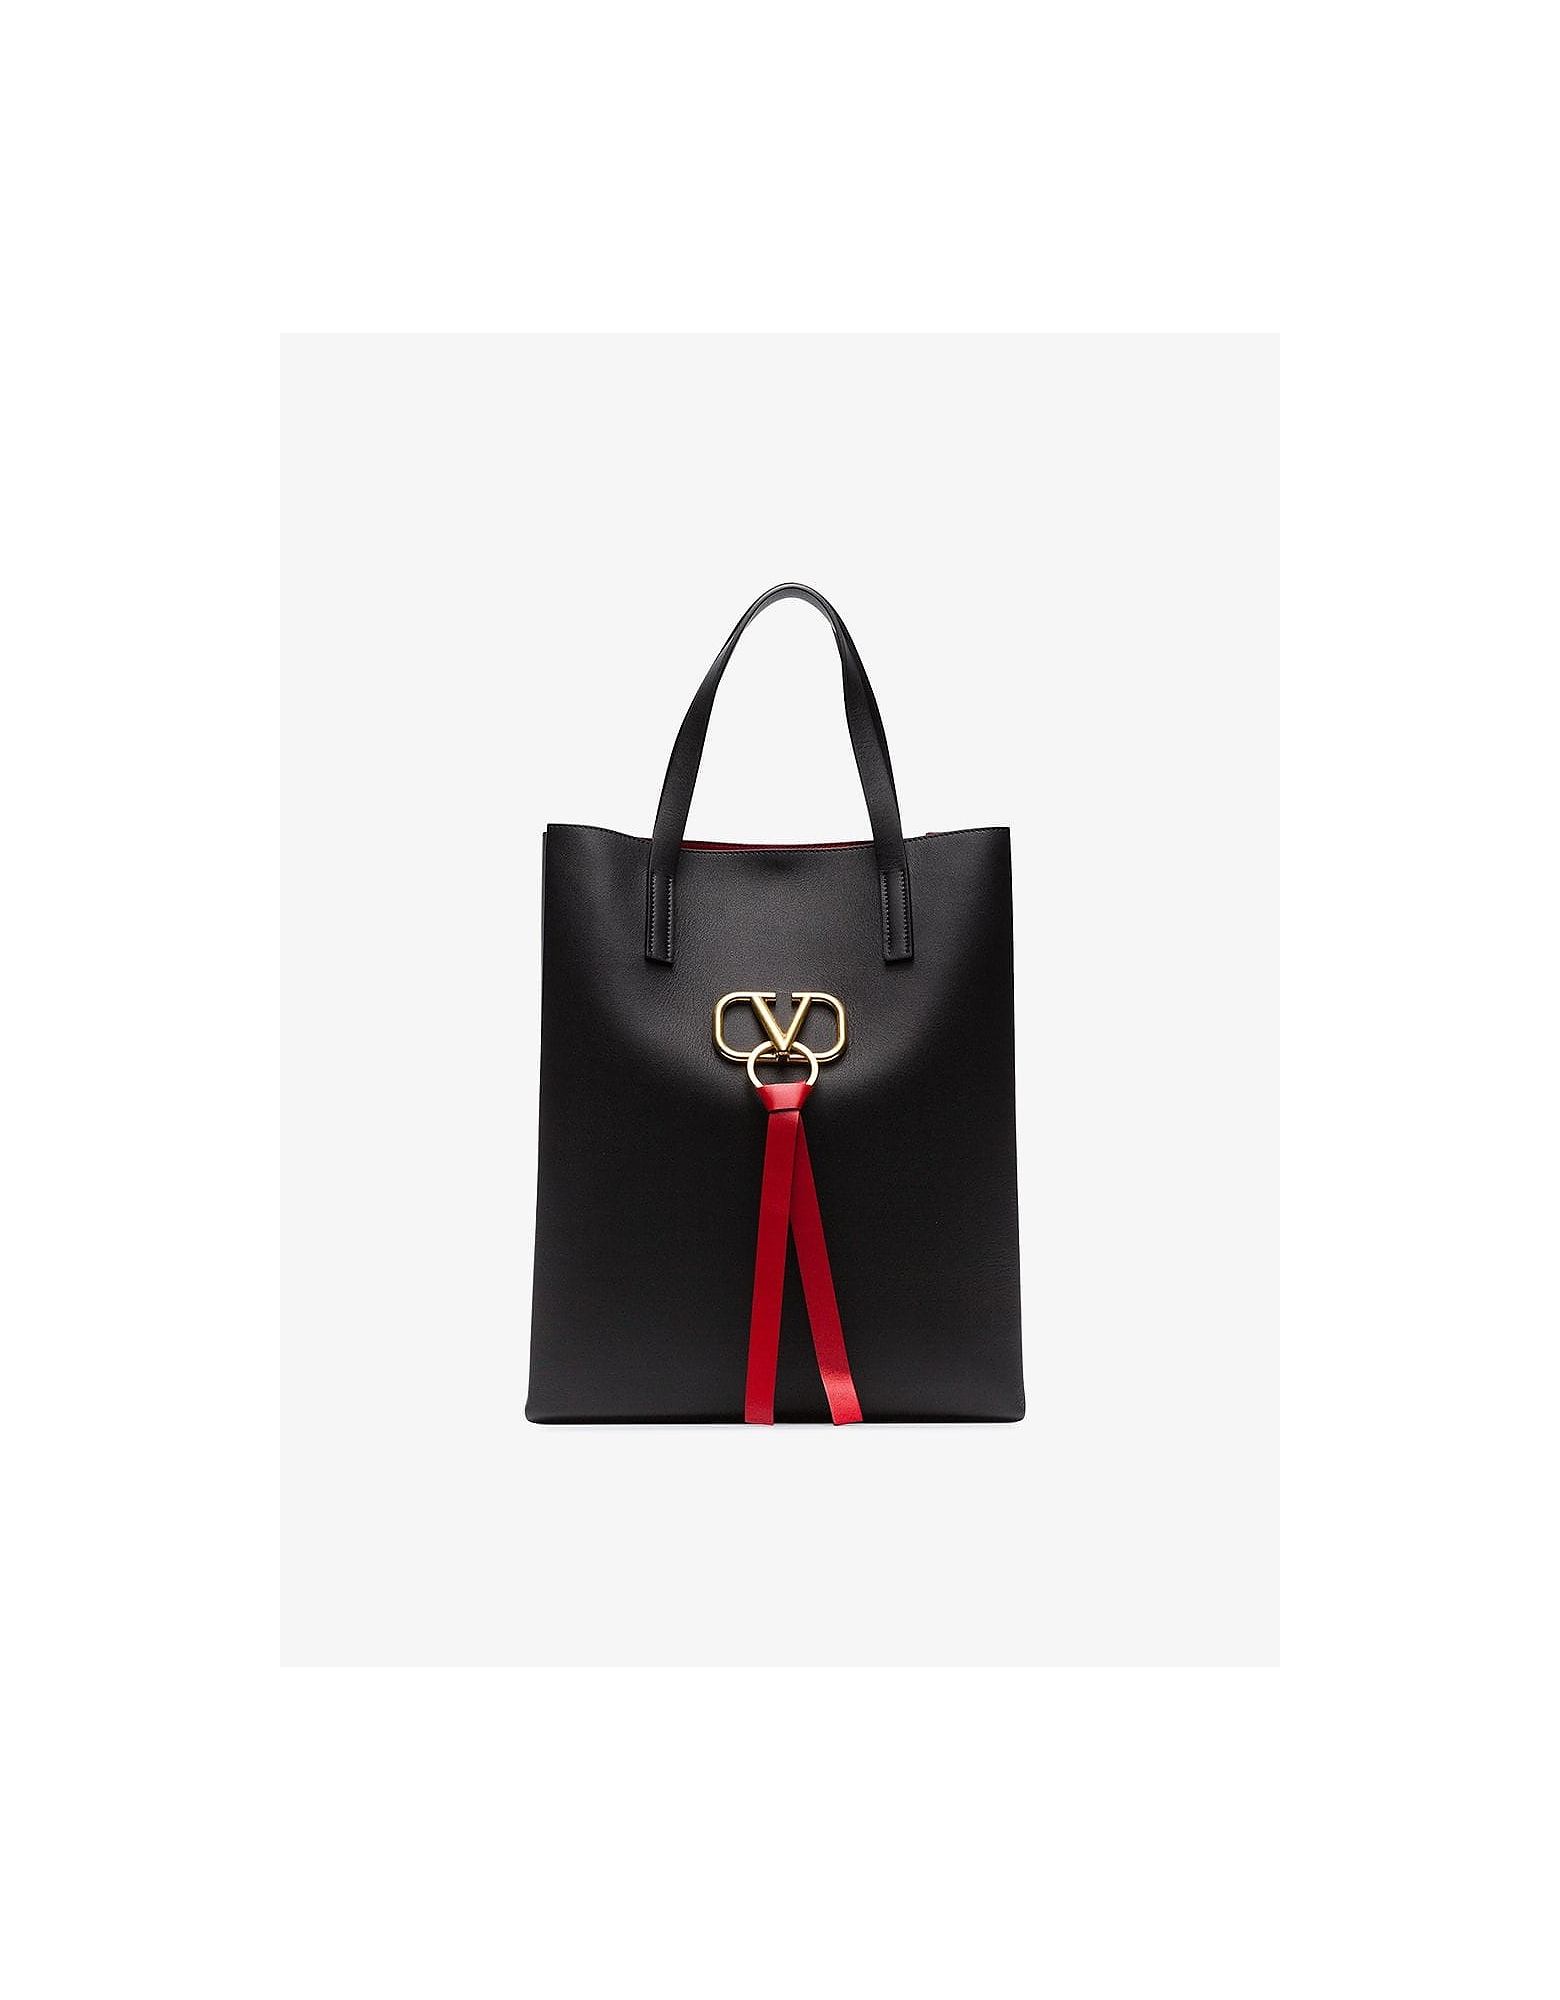 Valentino Designer Handbags, Black Garavani Vring Large Leather Tote Bag